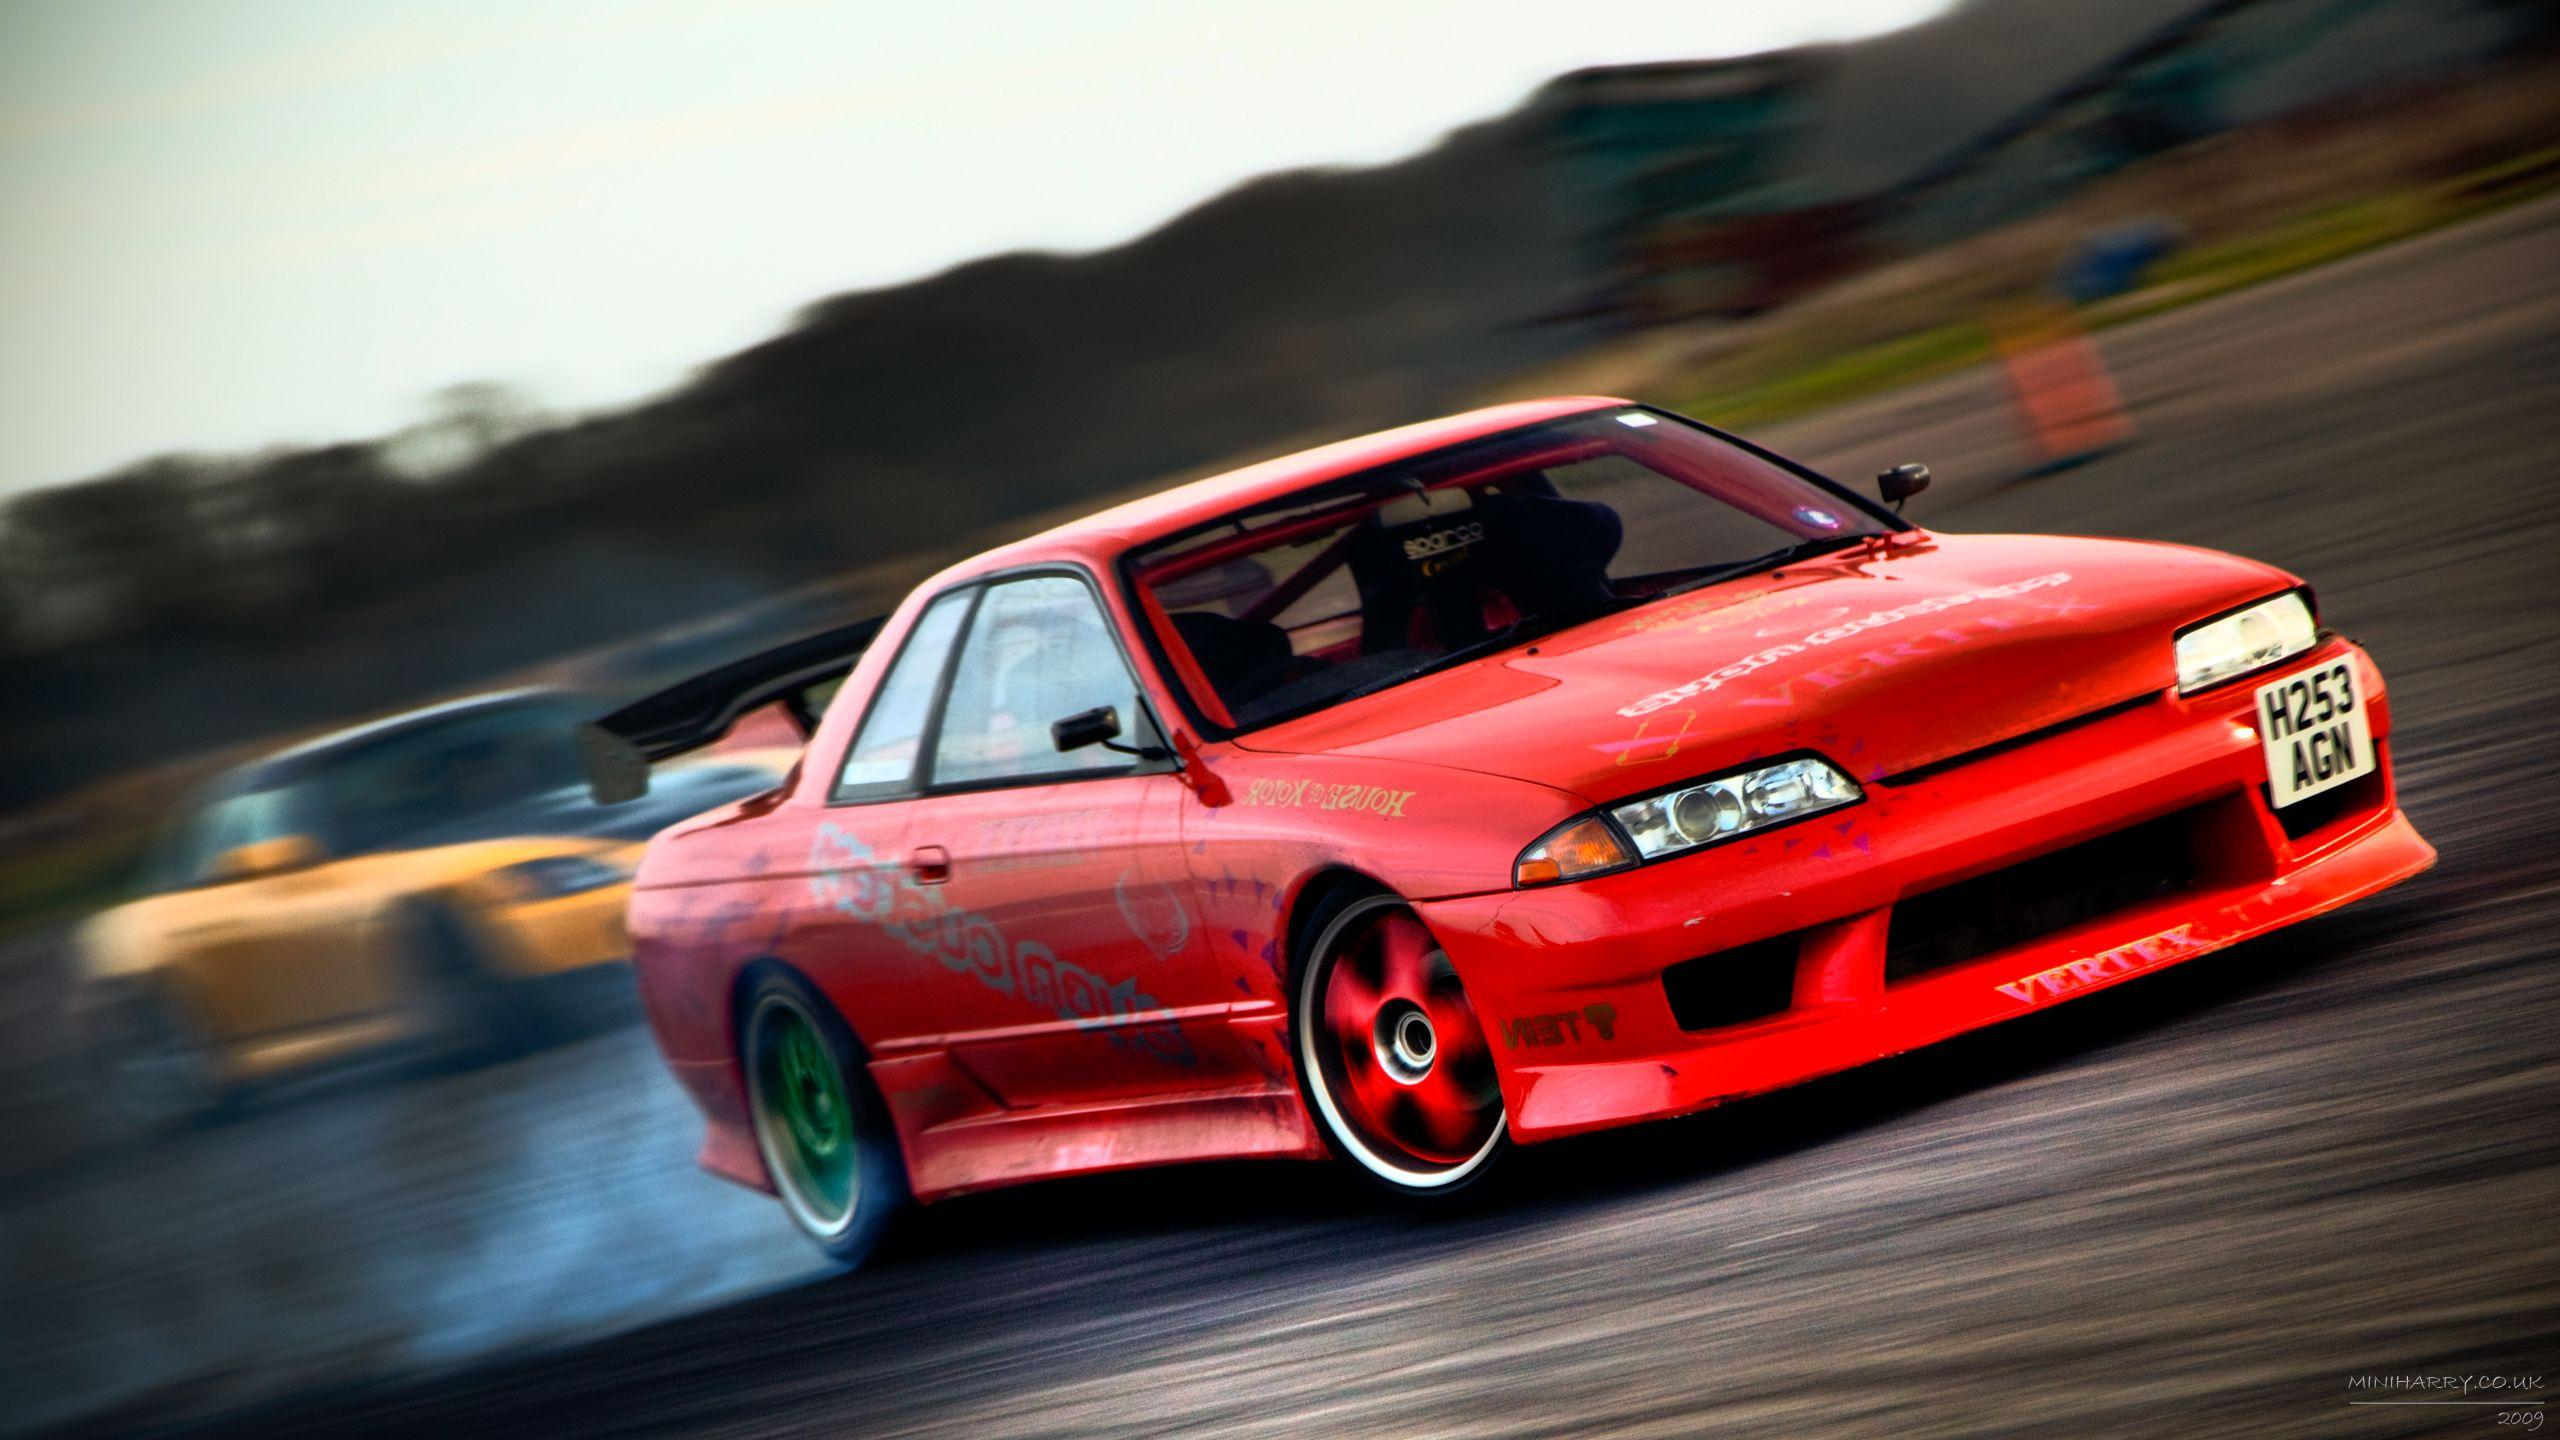 cars, vehicles, Nissan Skyline R32 - Free Wallpaper / WallpaperJam.com